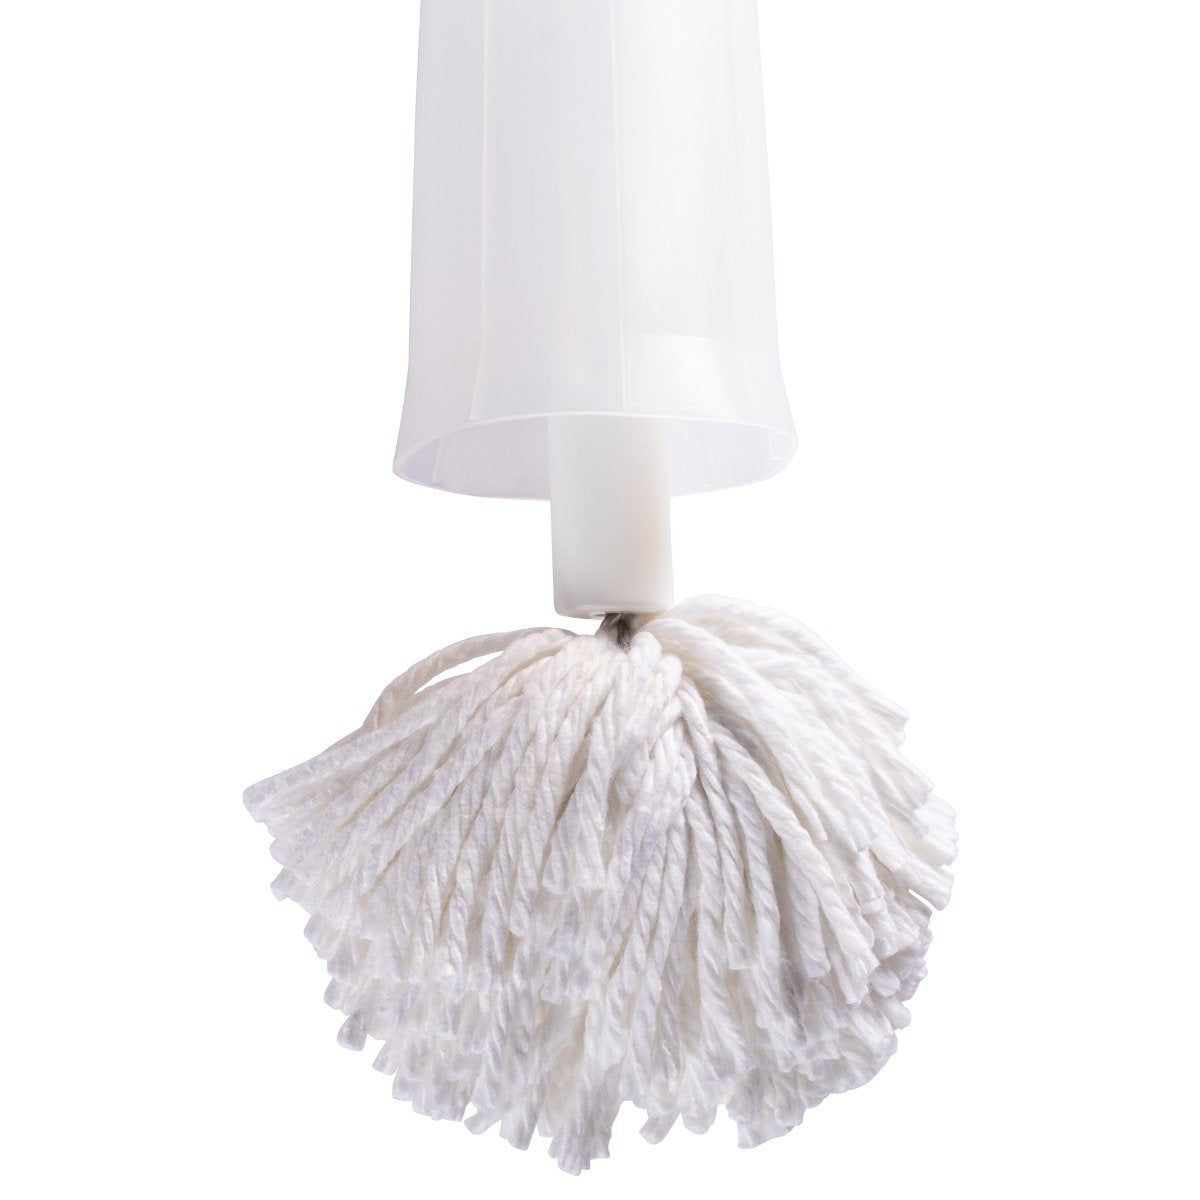 Multi Use Bathroom Swab - Acrylic Yarn - Plastic Handle W/ Hang Up Hole.-Cleaning Brushes-Fuller Brush Company